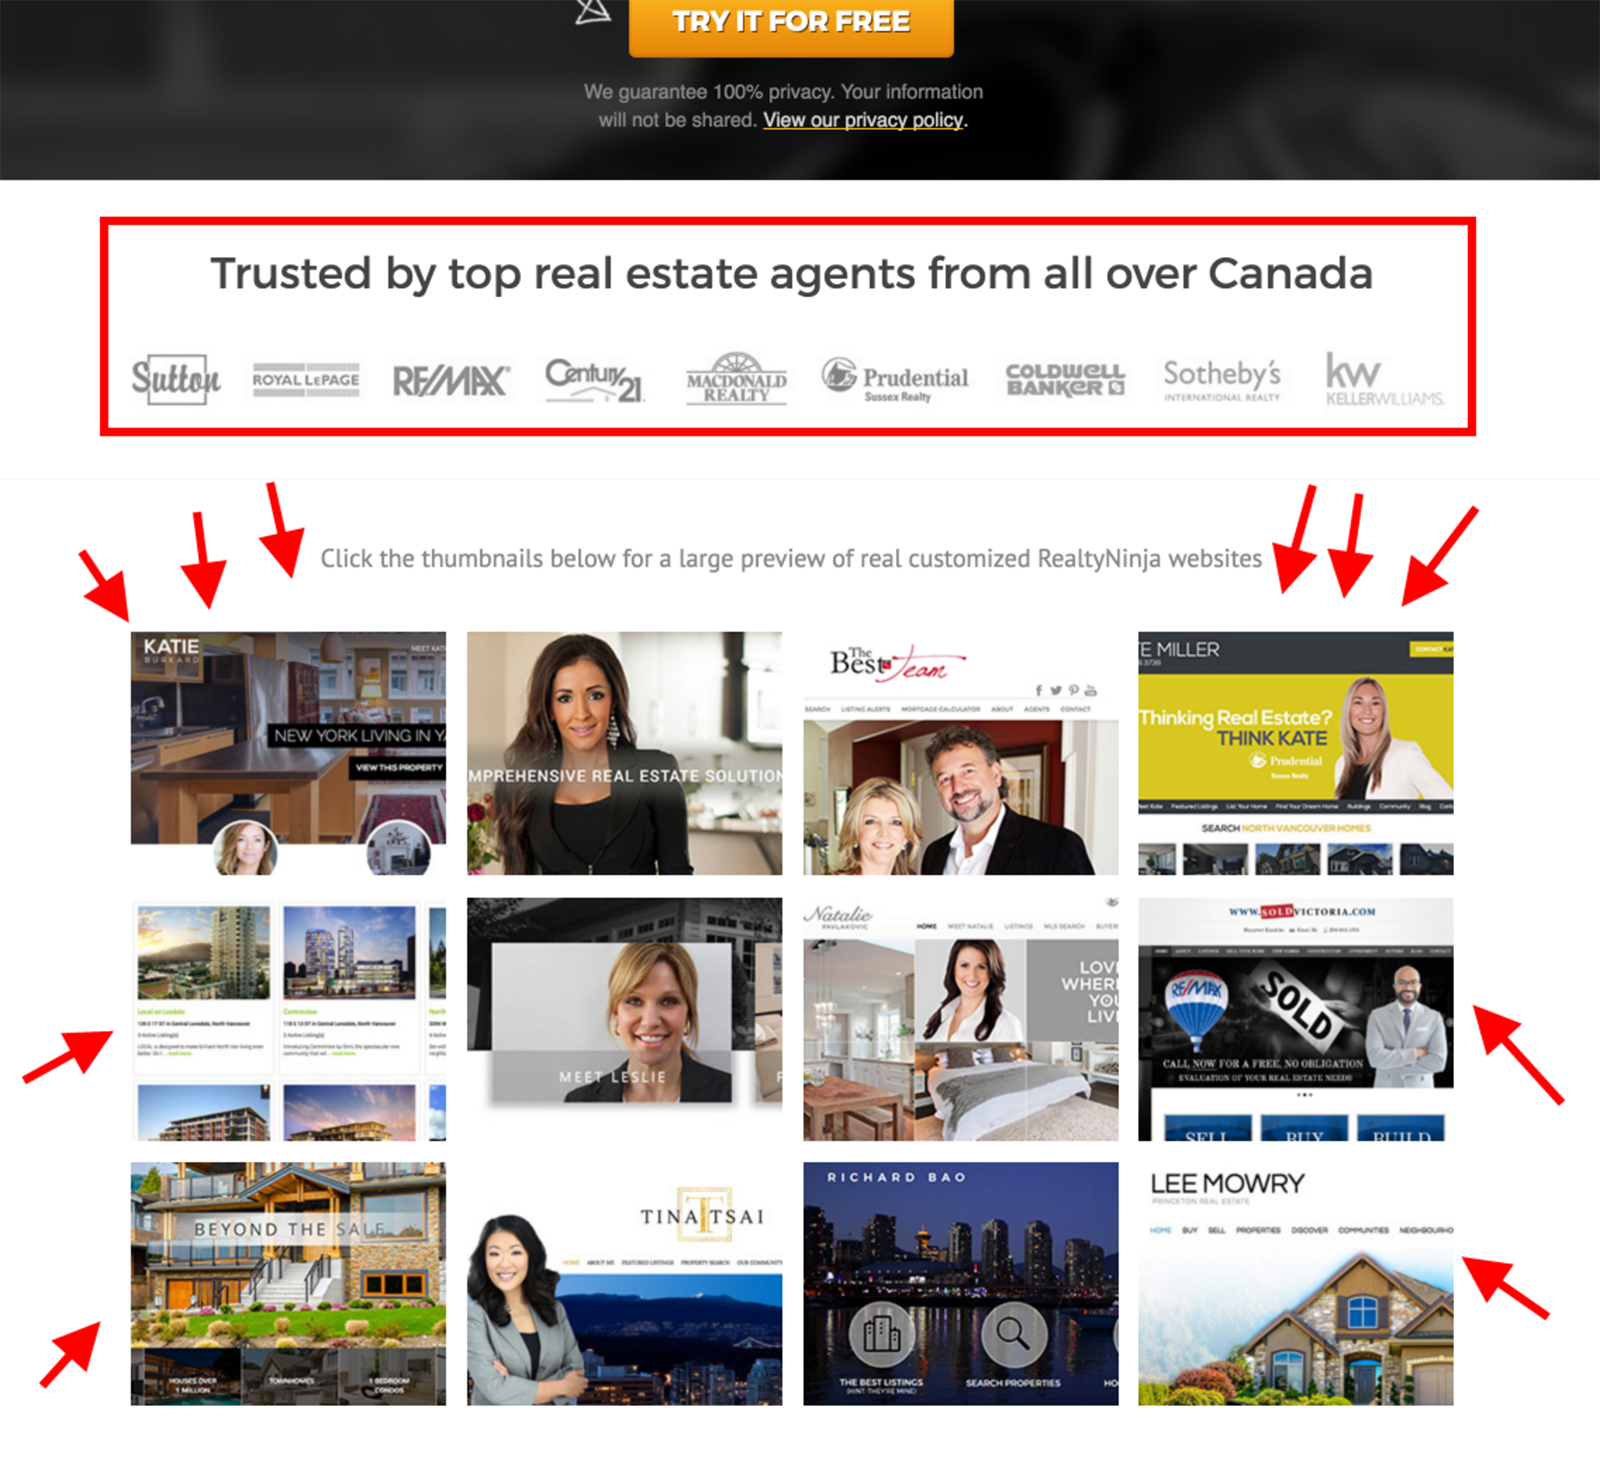 real estate landing page - trust indicators